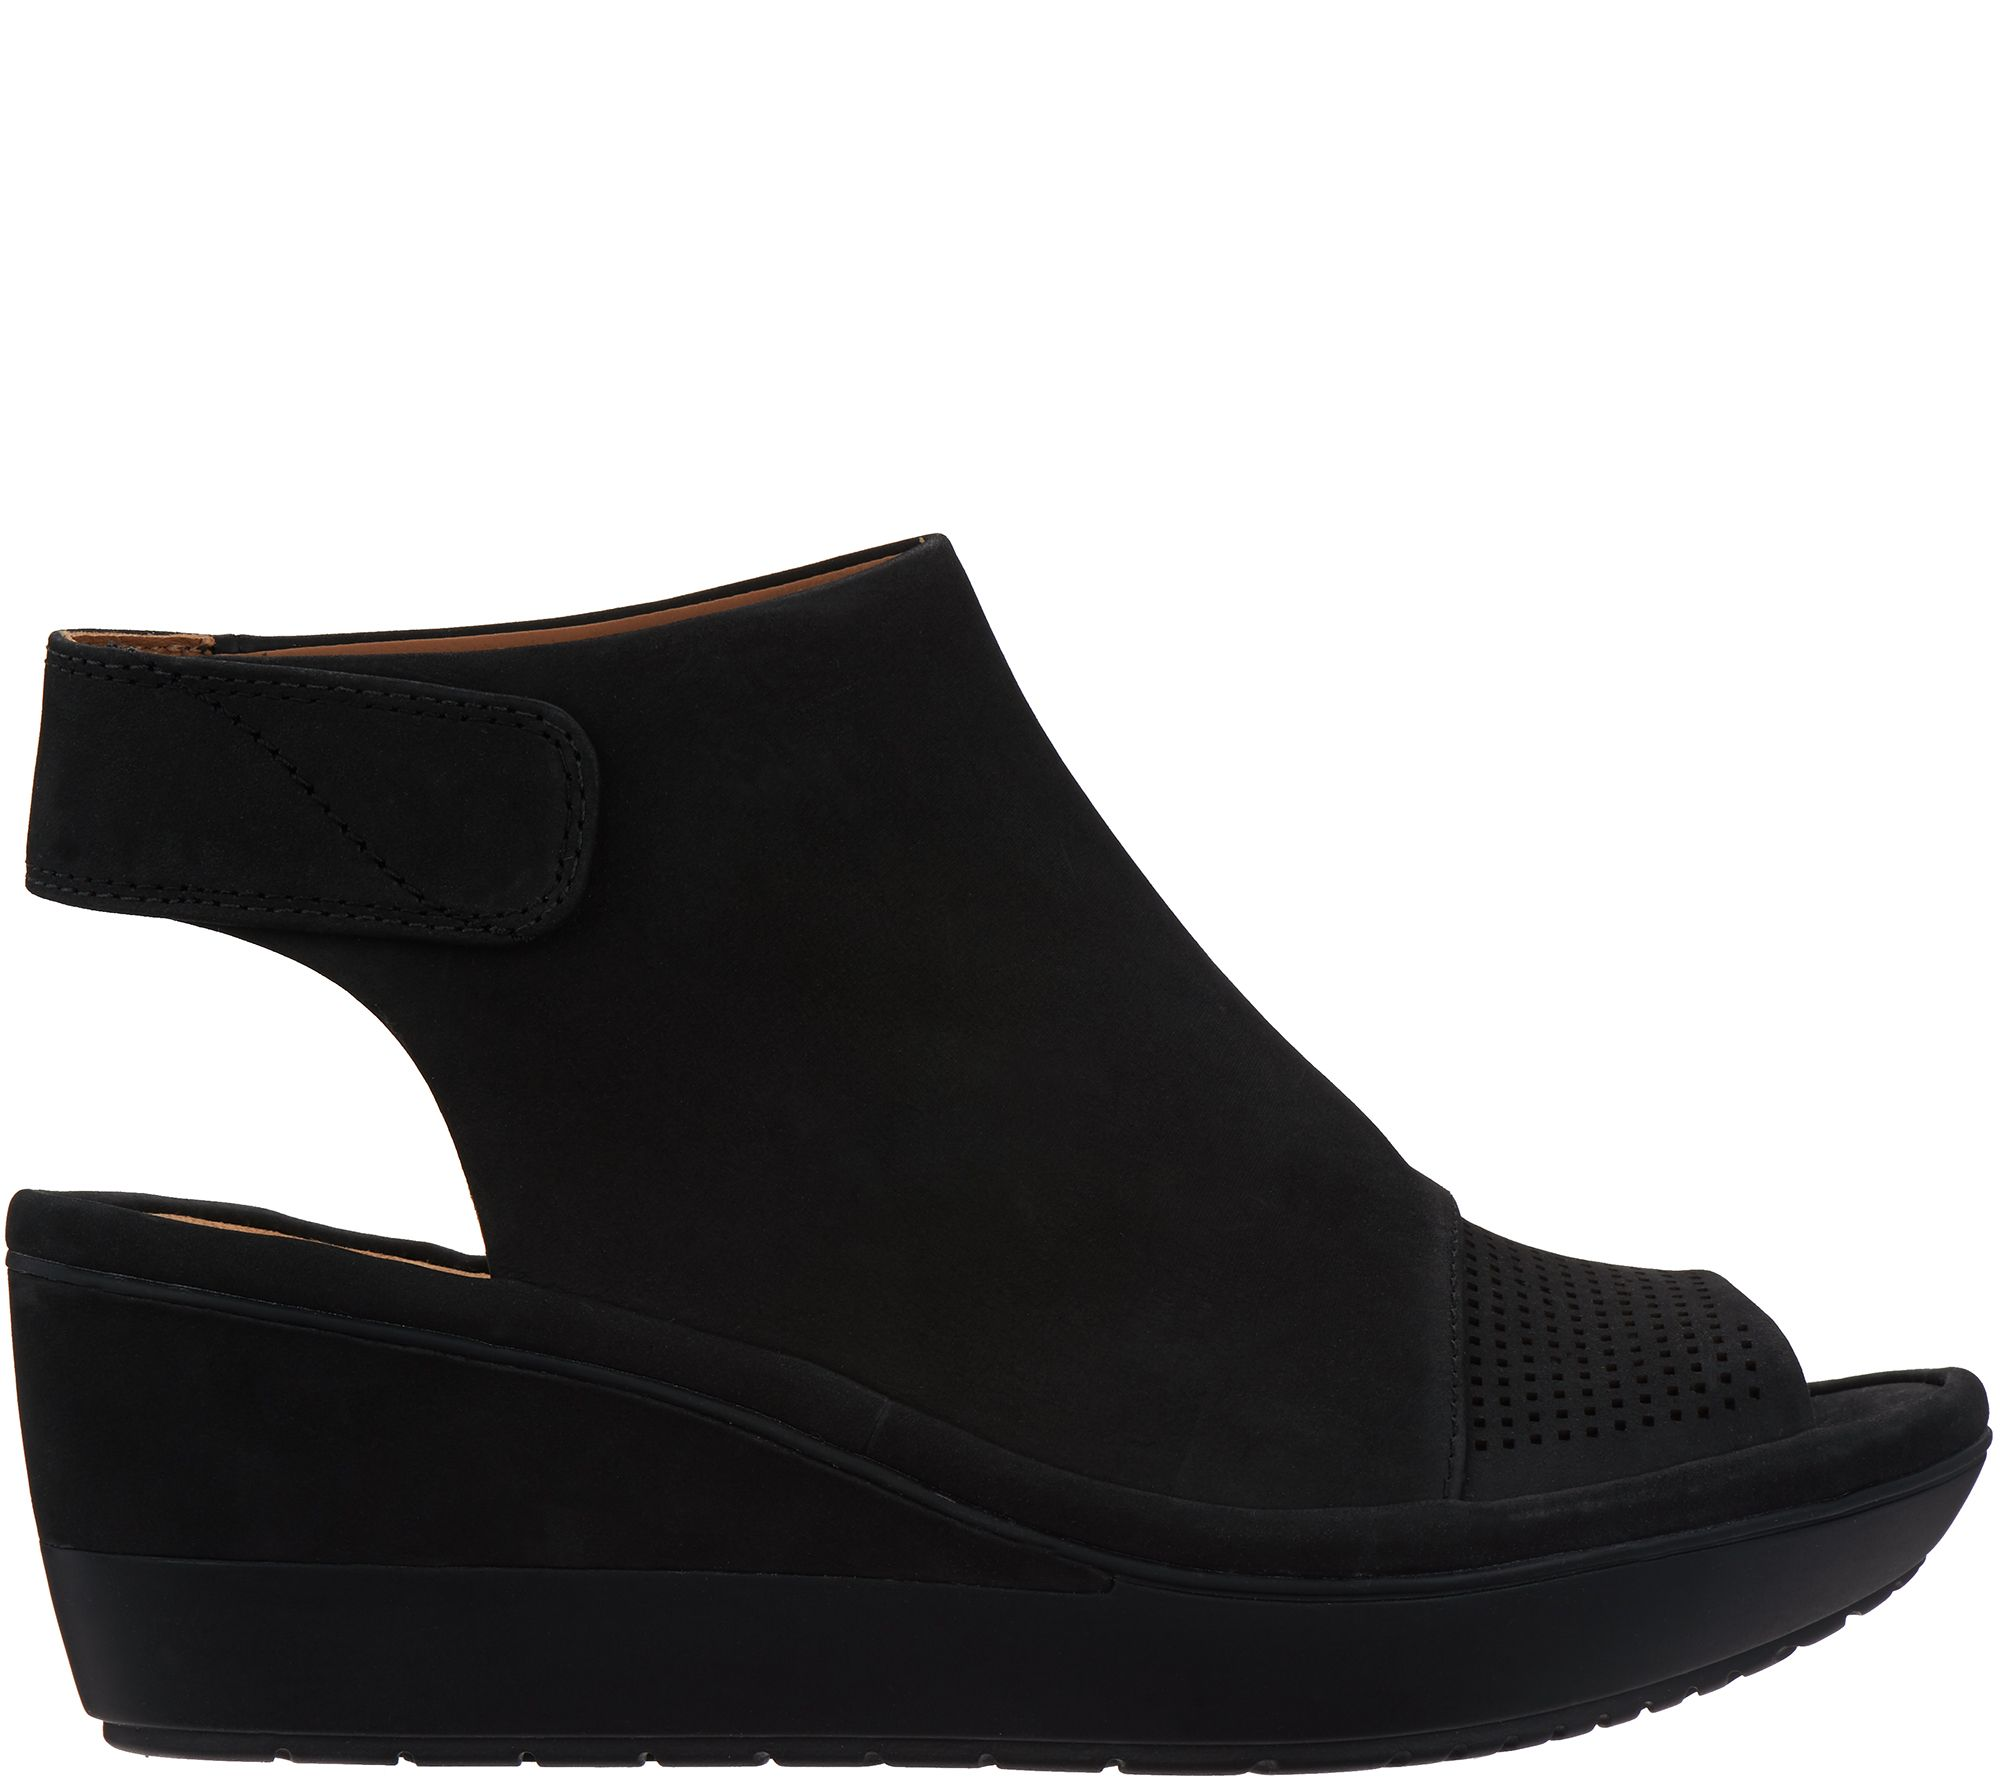 0e9d56f9aba7 Clarks UnStructured Peep Toe Wedge Sandals - Wynnmere Abie - Page 1 —  QVC.com